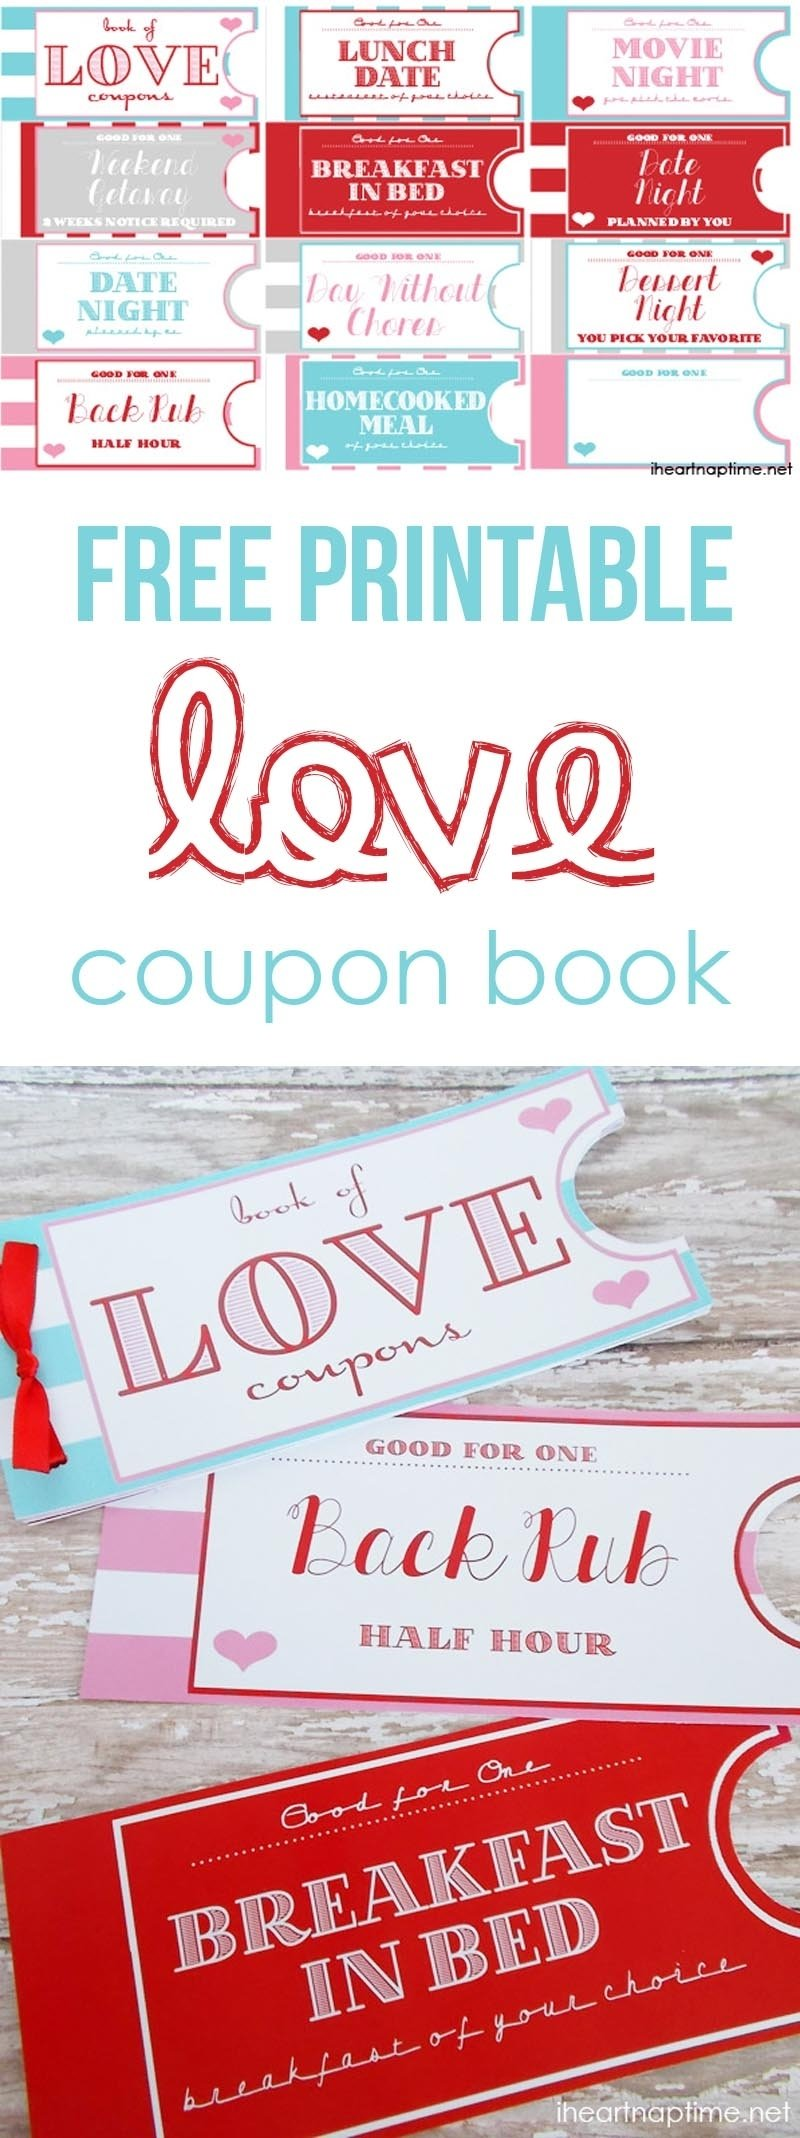 10 Most Recommended Cute Coupon Book Ideas For Boyfriend printable love coupon book the perfect valentines day gift 2020